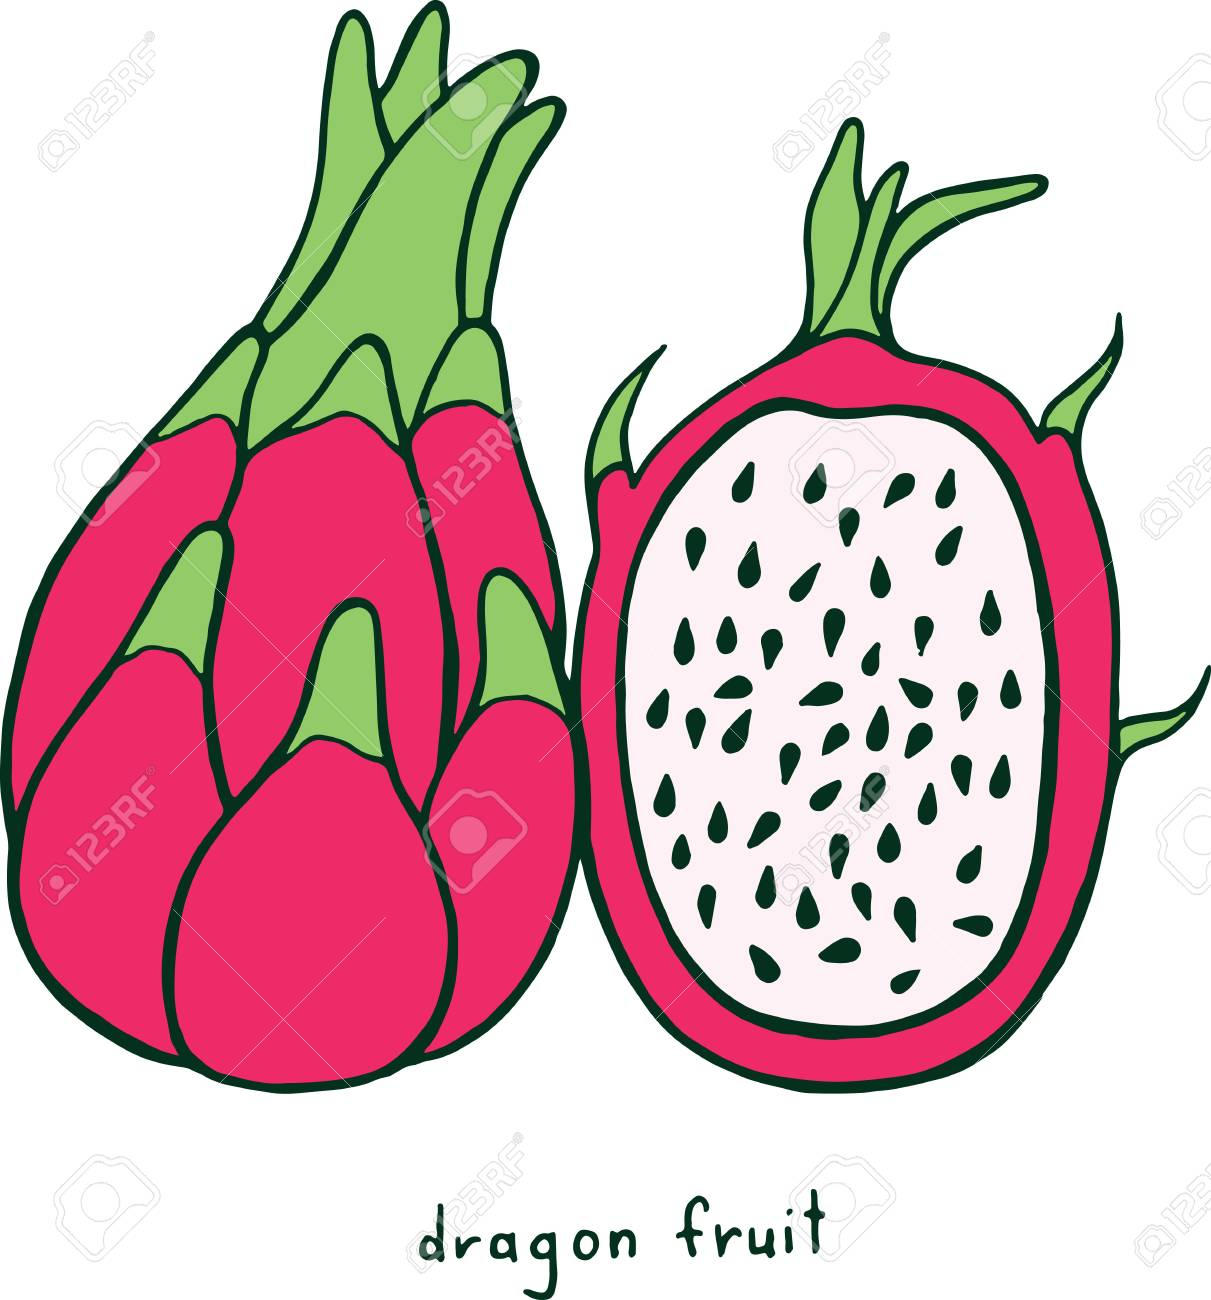 Dragon fruit coloring page graphic vector colorful doodle art for coloring books for adults